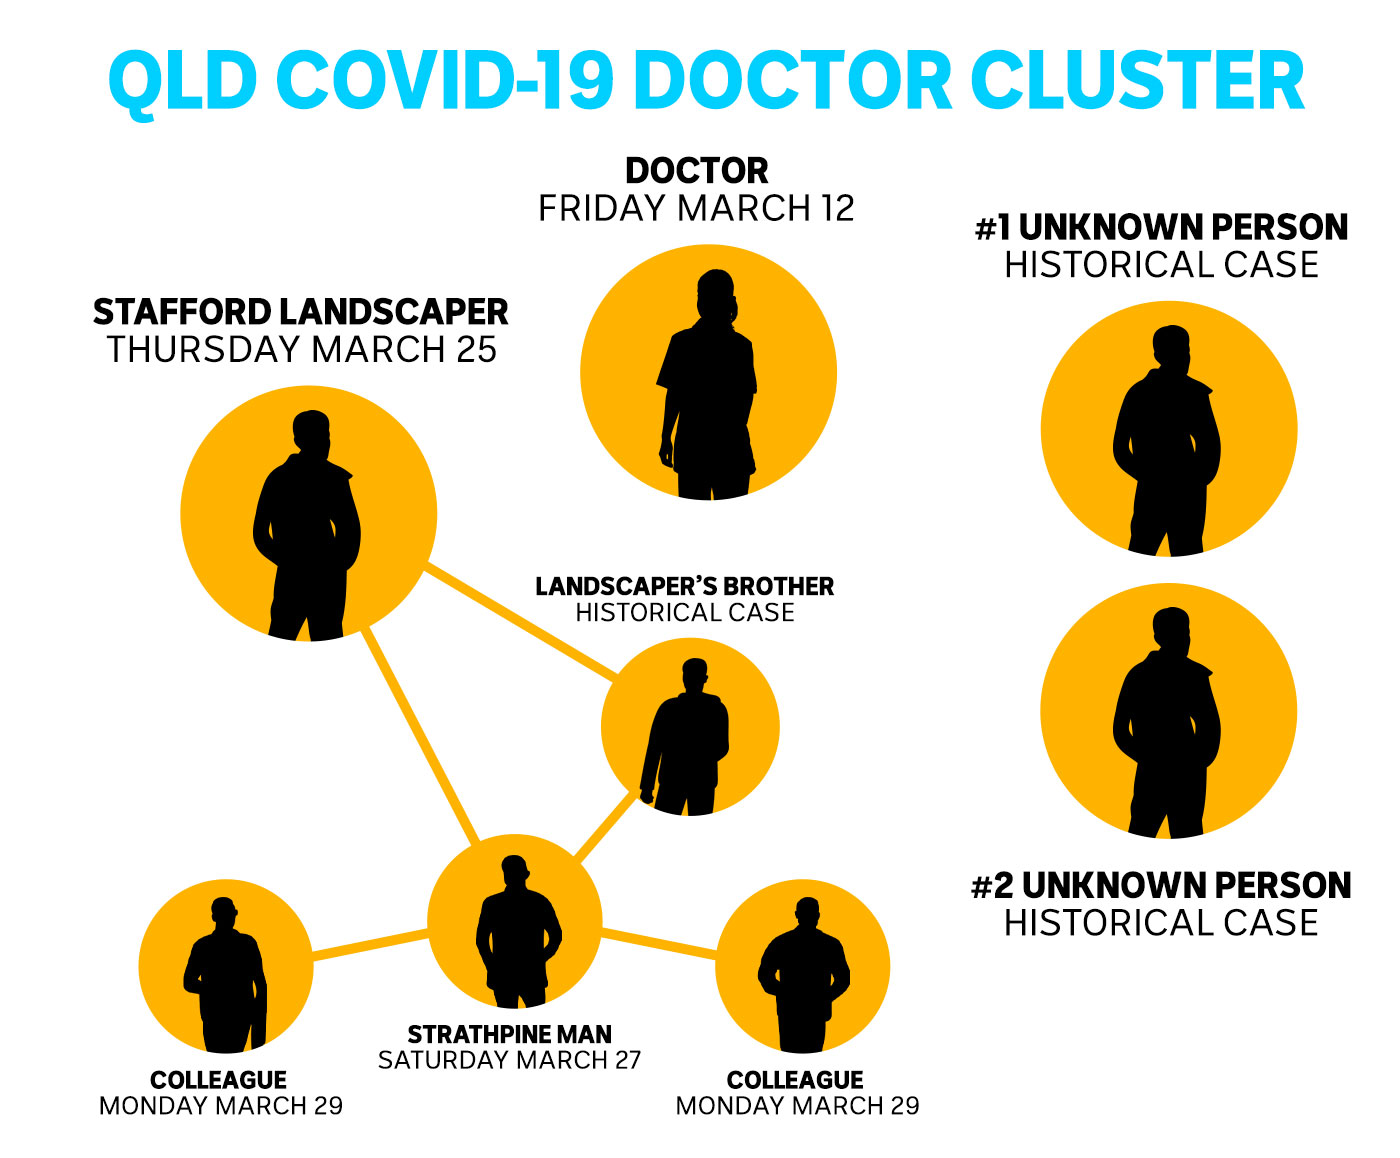 A graphic showing people connected in a coronavirus cluster.